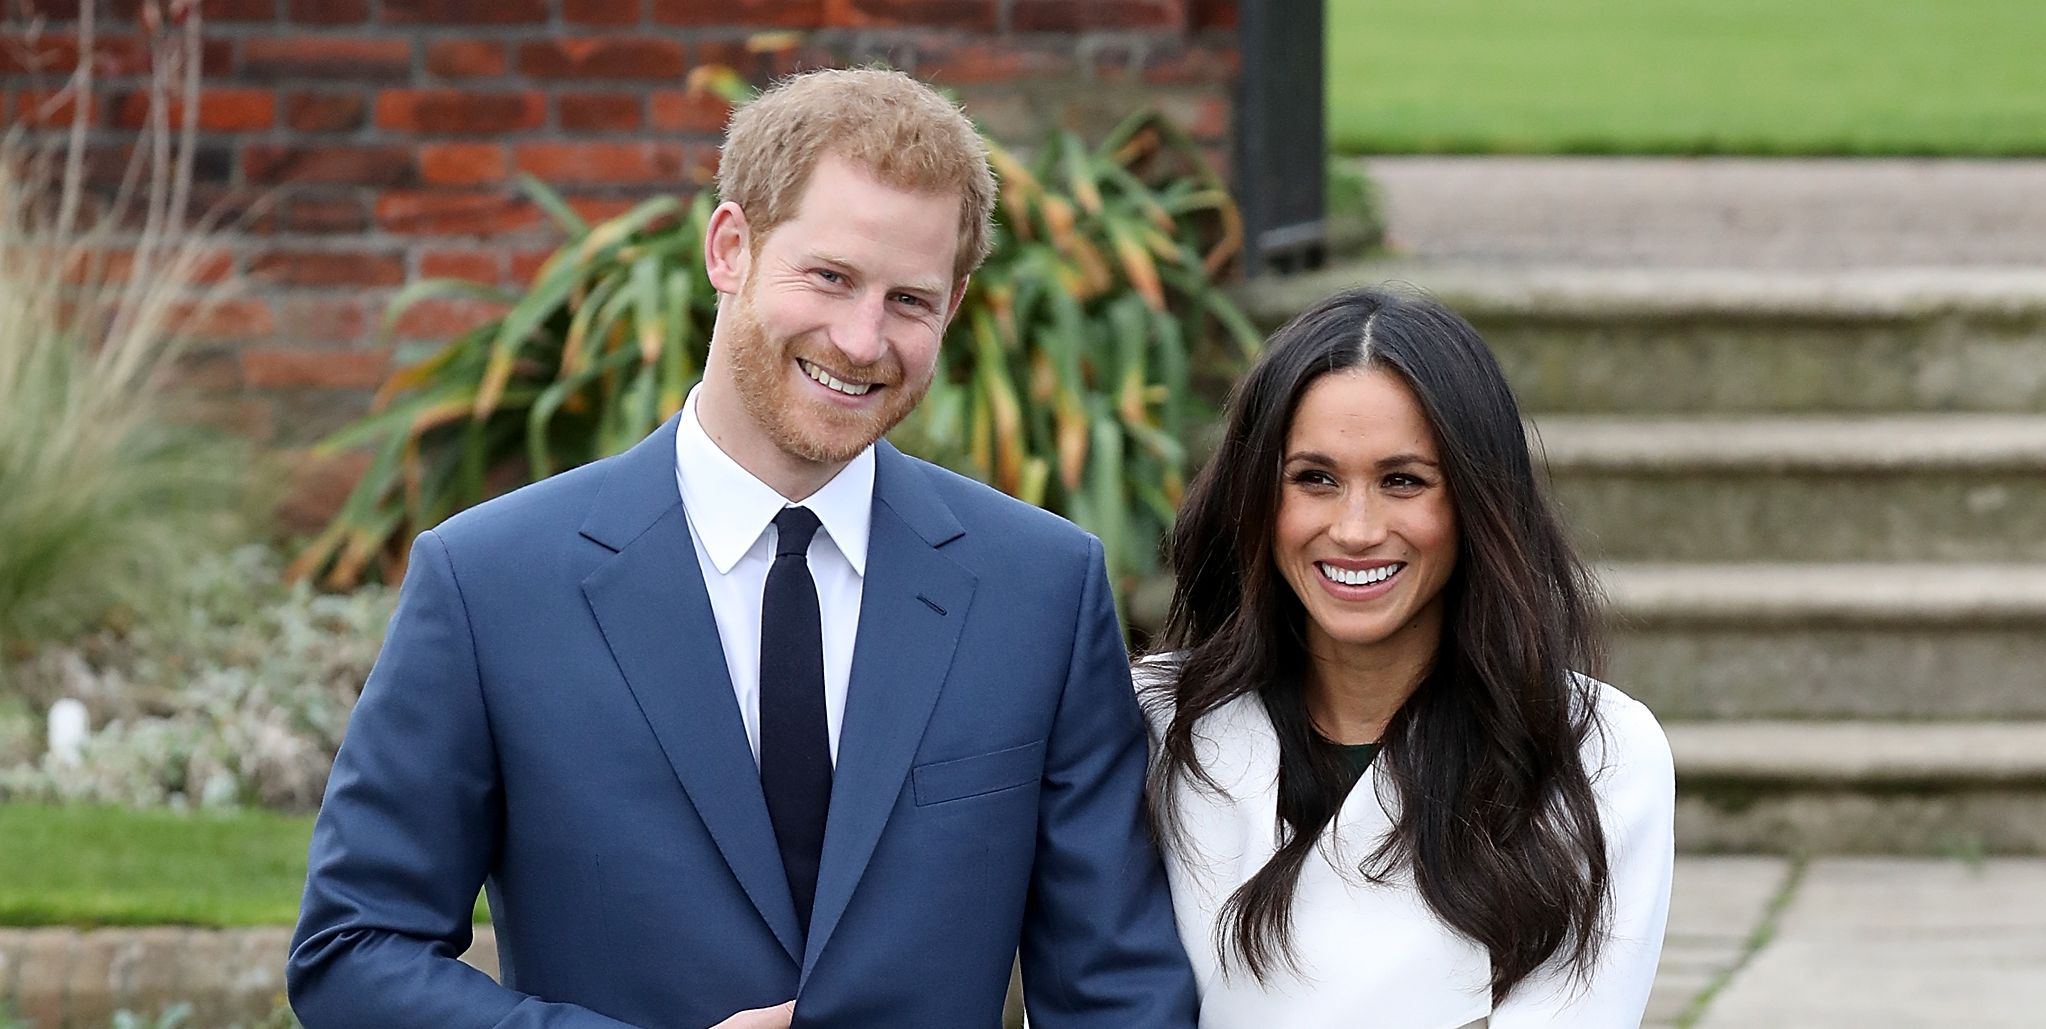 Meghan Markle & Prince Harry Just Sent the Sweetest Holiday Thank You Cards